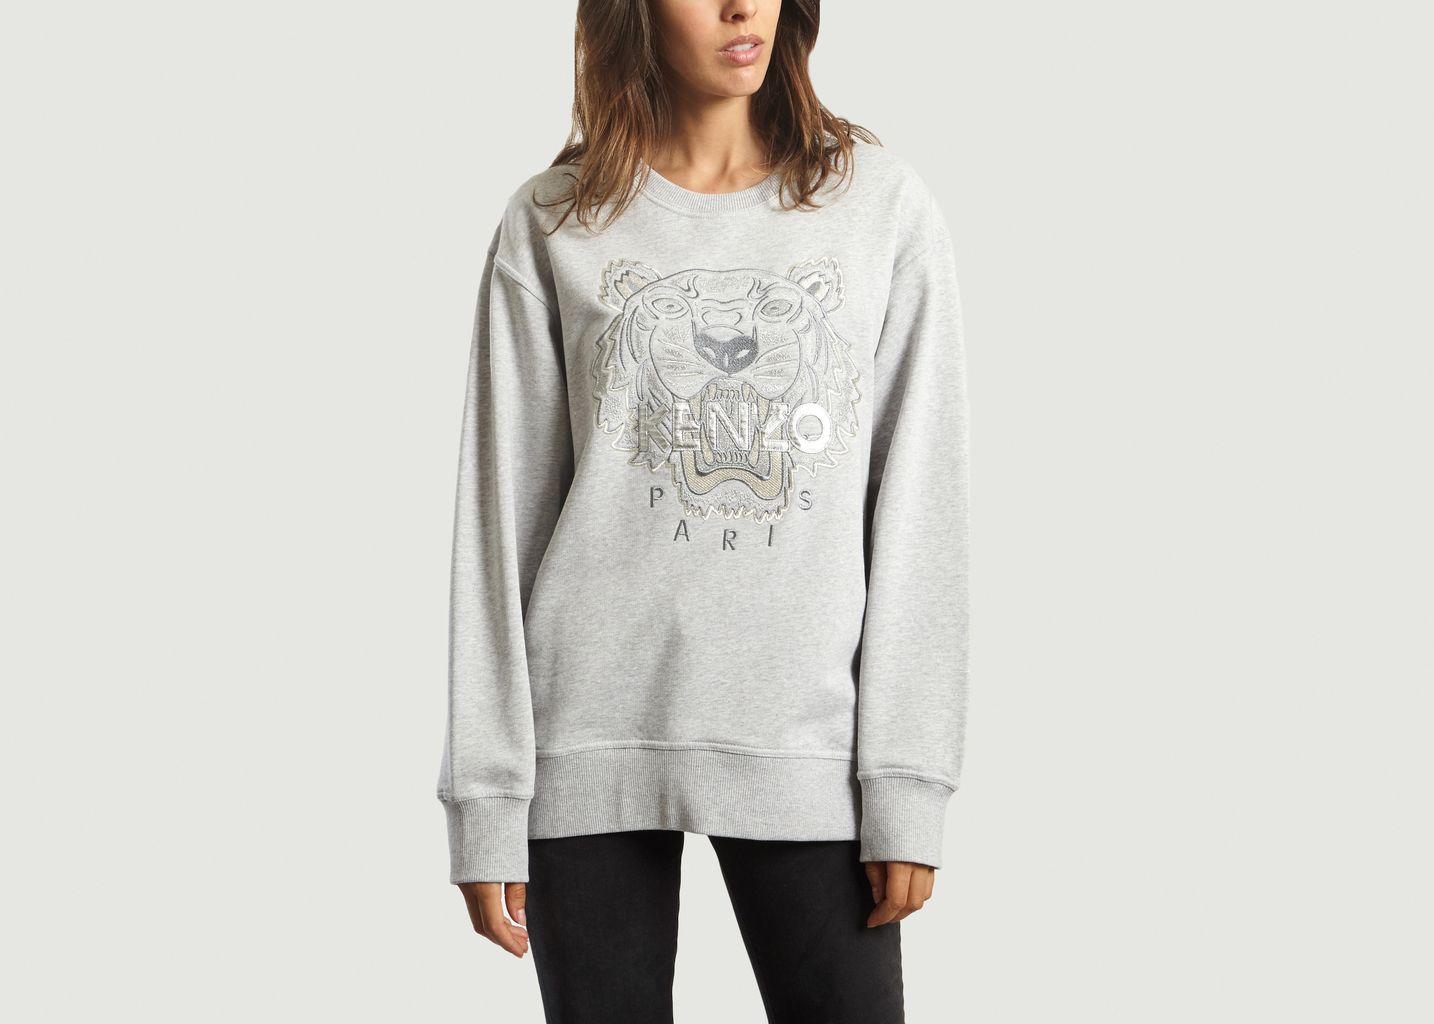 f9781089235 Iridescent Tiger Sweatshirt Light Grey Kenzo Paris